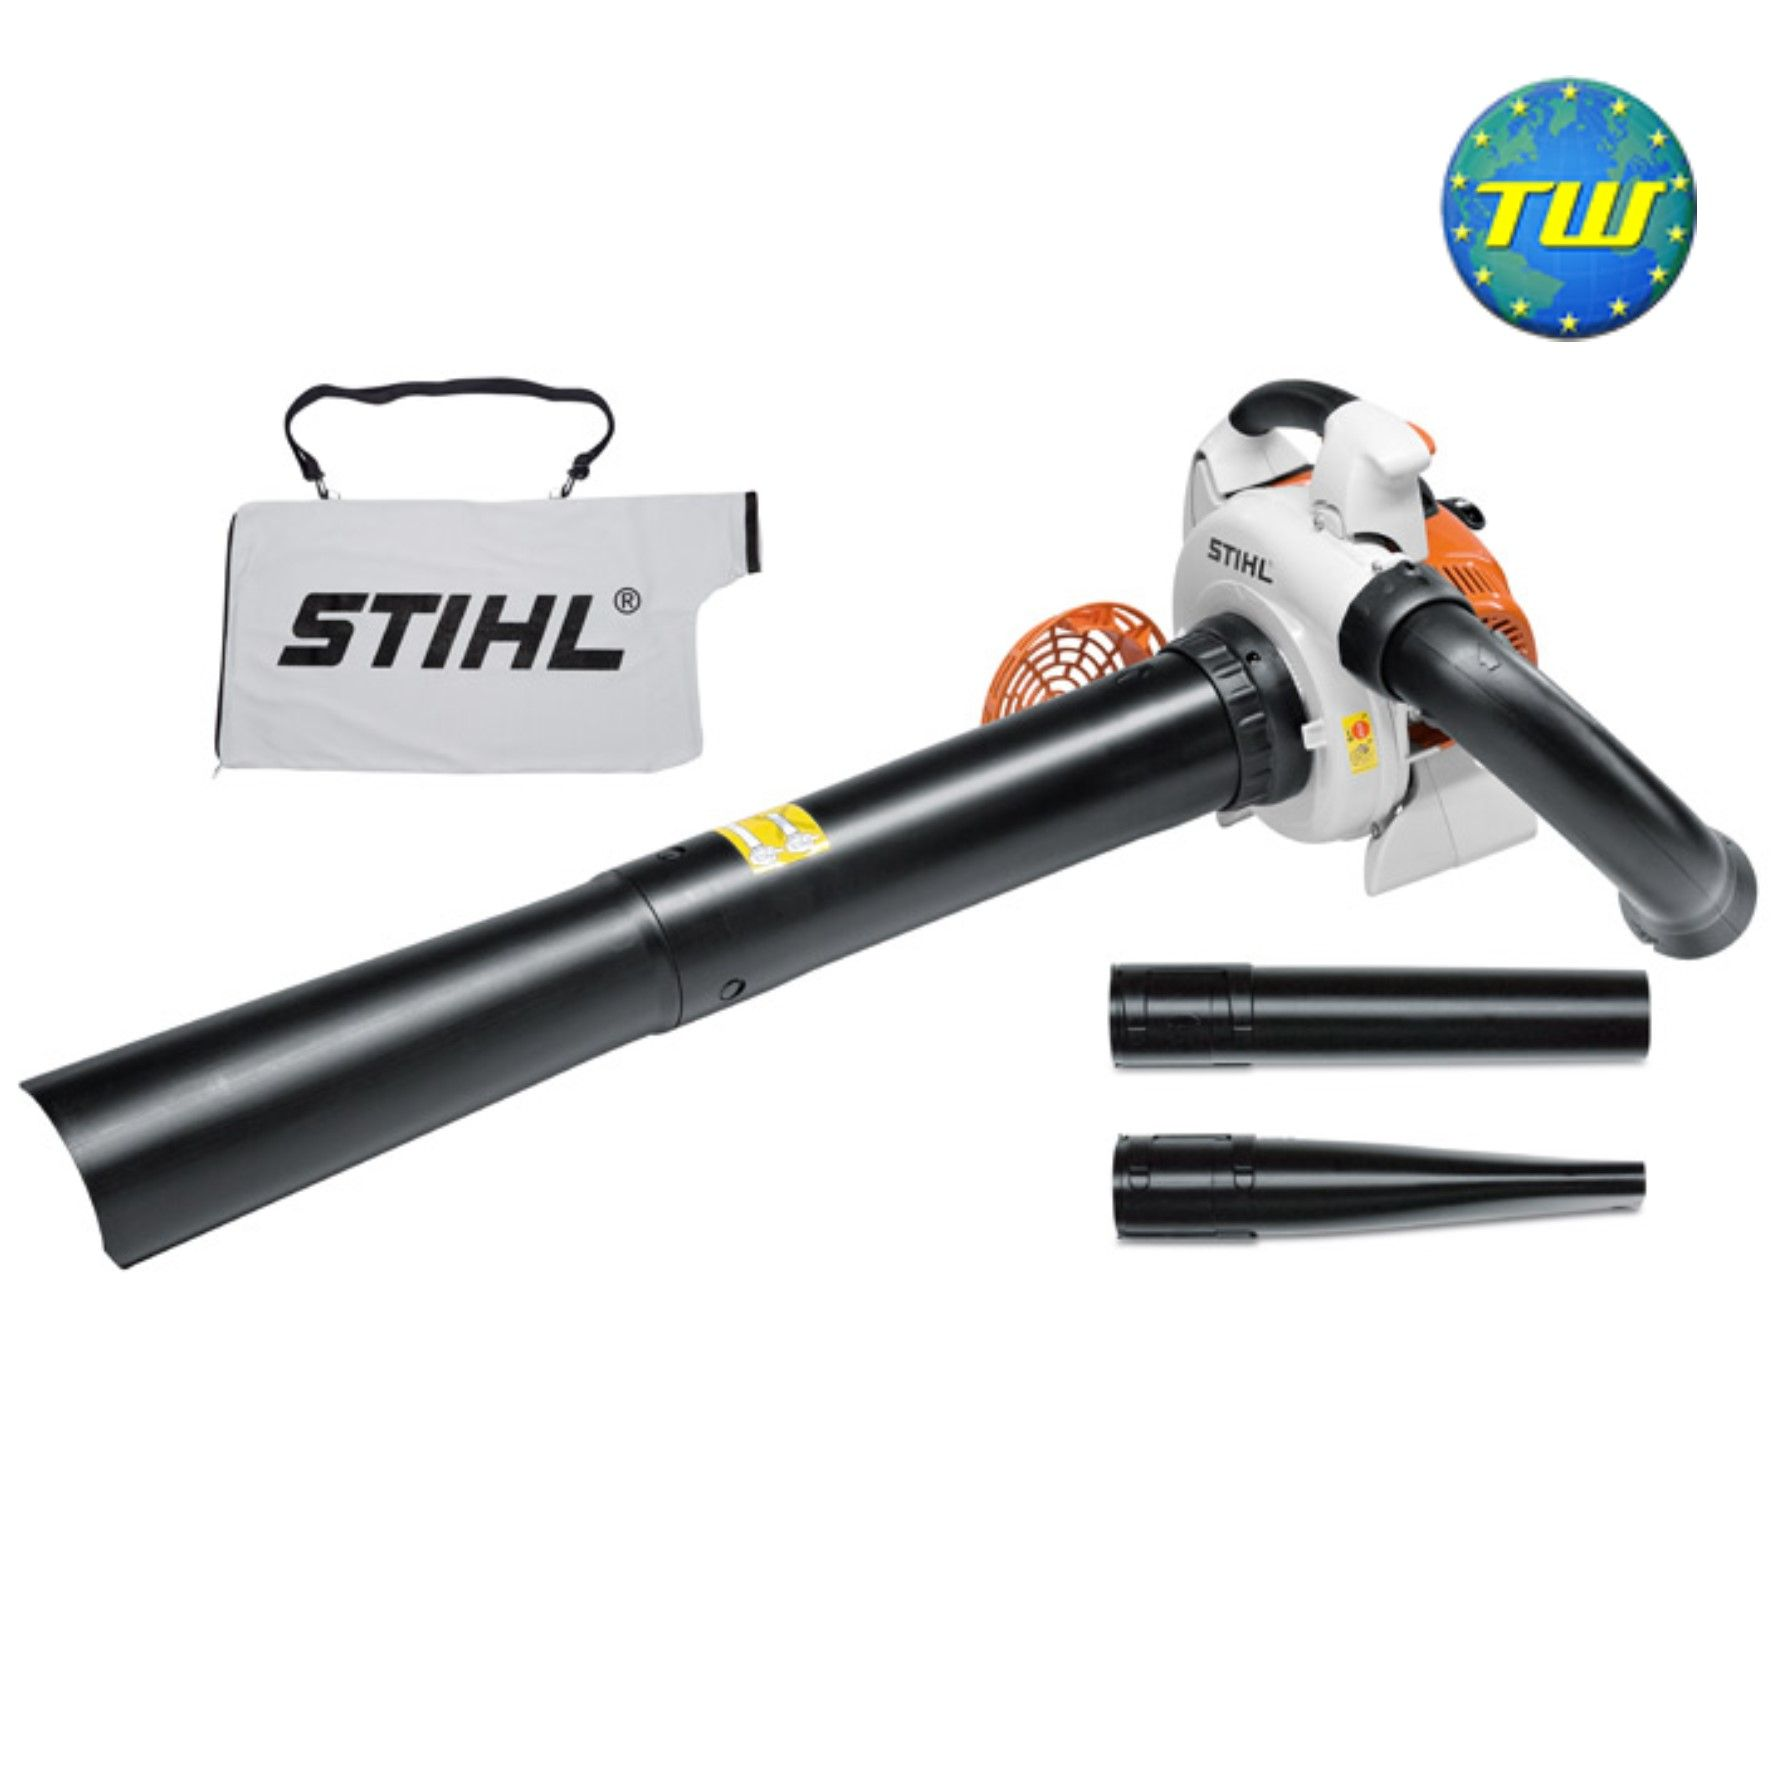 Pin by TW Wholesale on Stihl Petrol & Electric Tools + PPE Safety